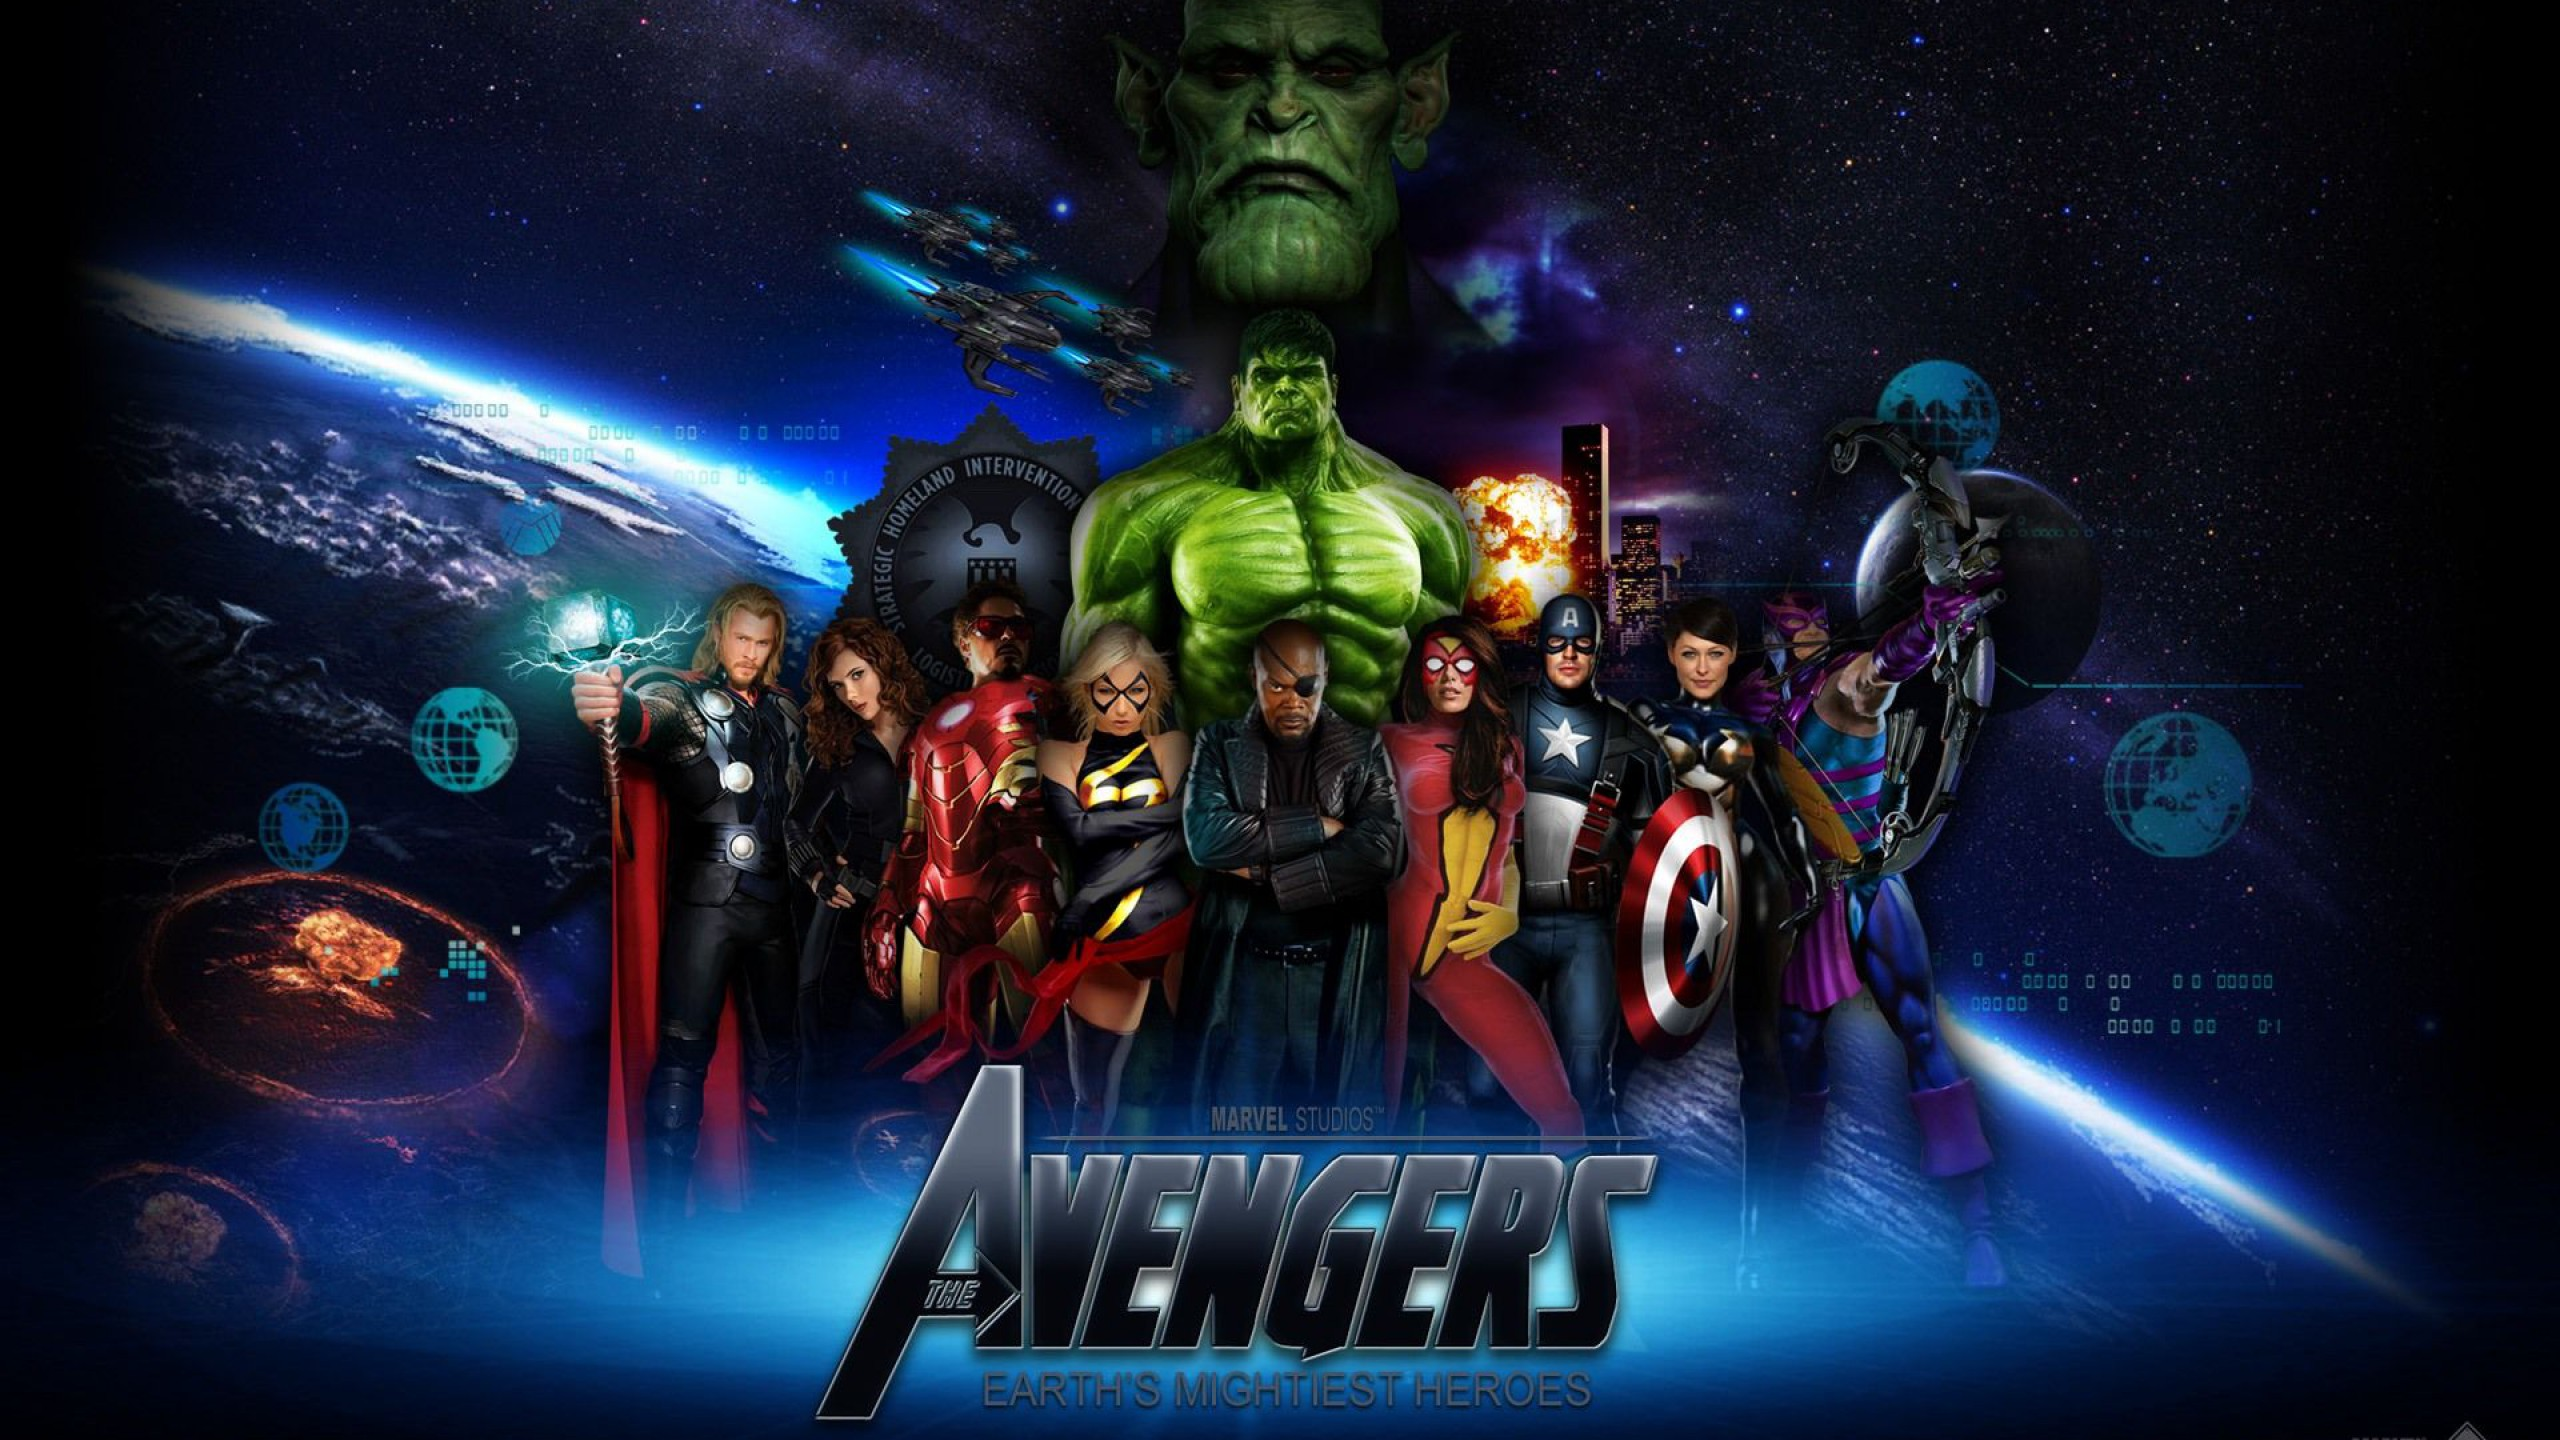 The Avengers Earth s Mightiest Heroes Full HD Wallpaper and